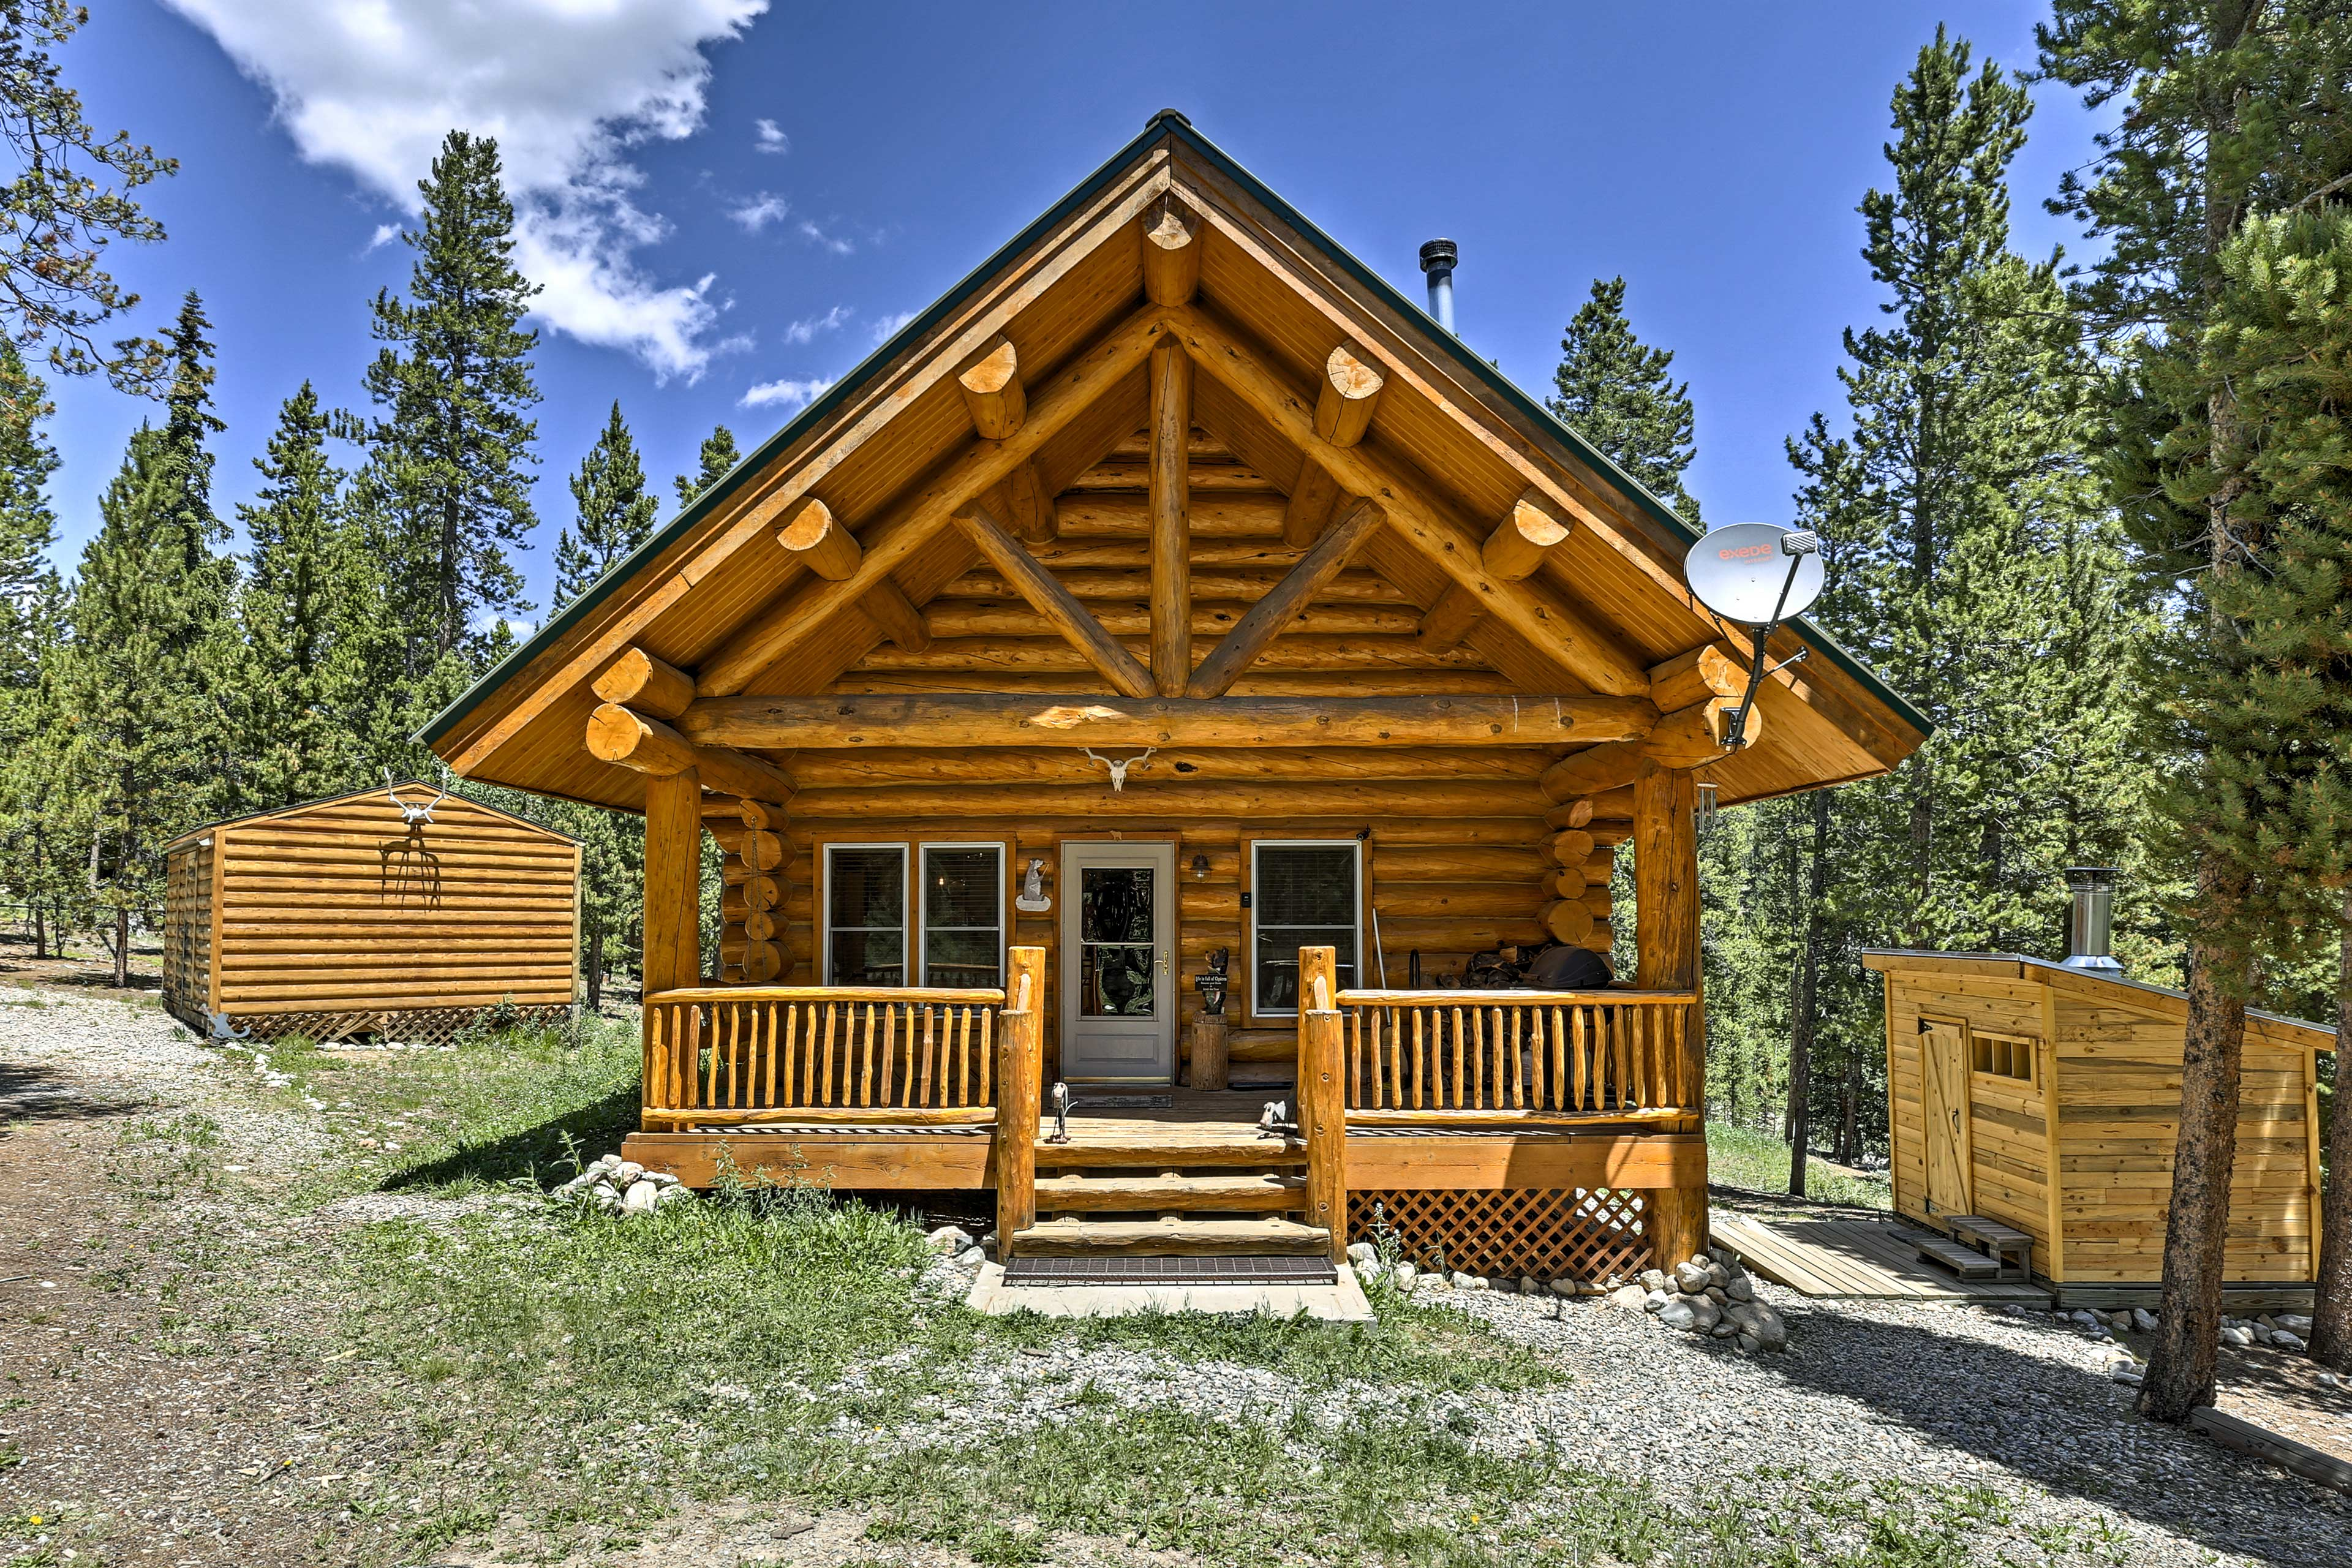 Escape to the mountains and stay at this charming vacation rental cabin!